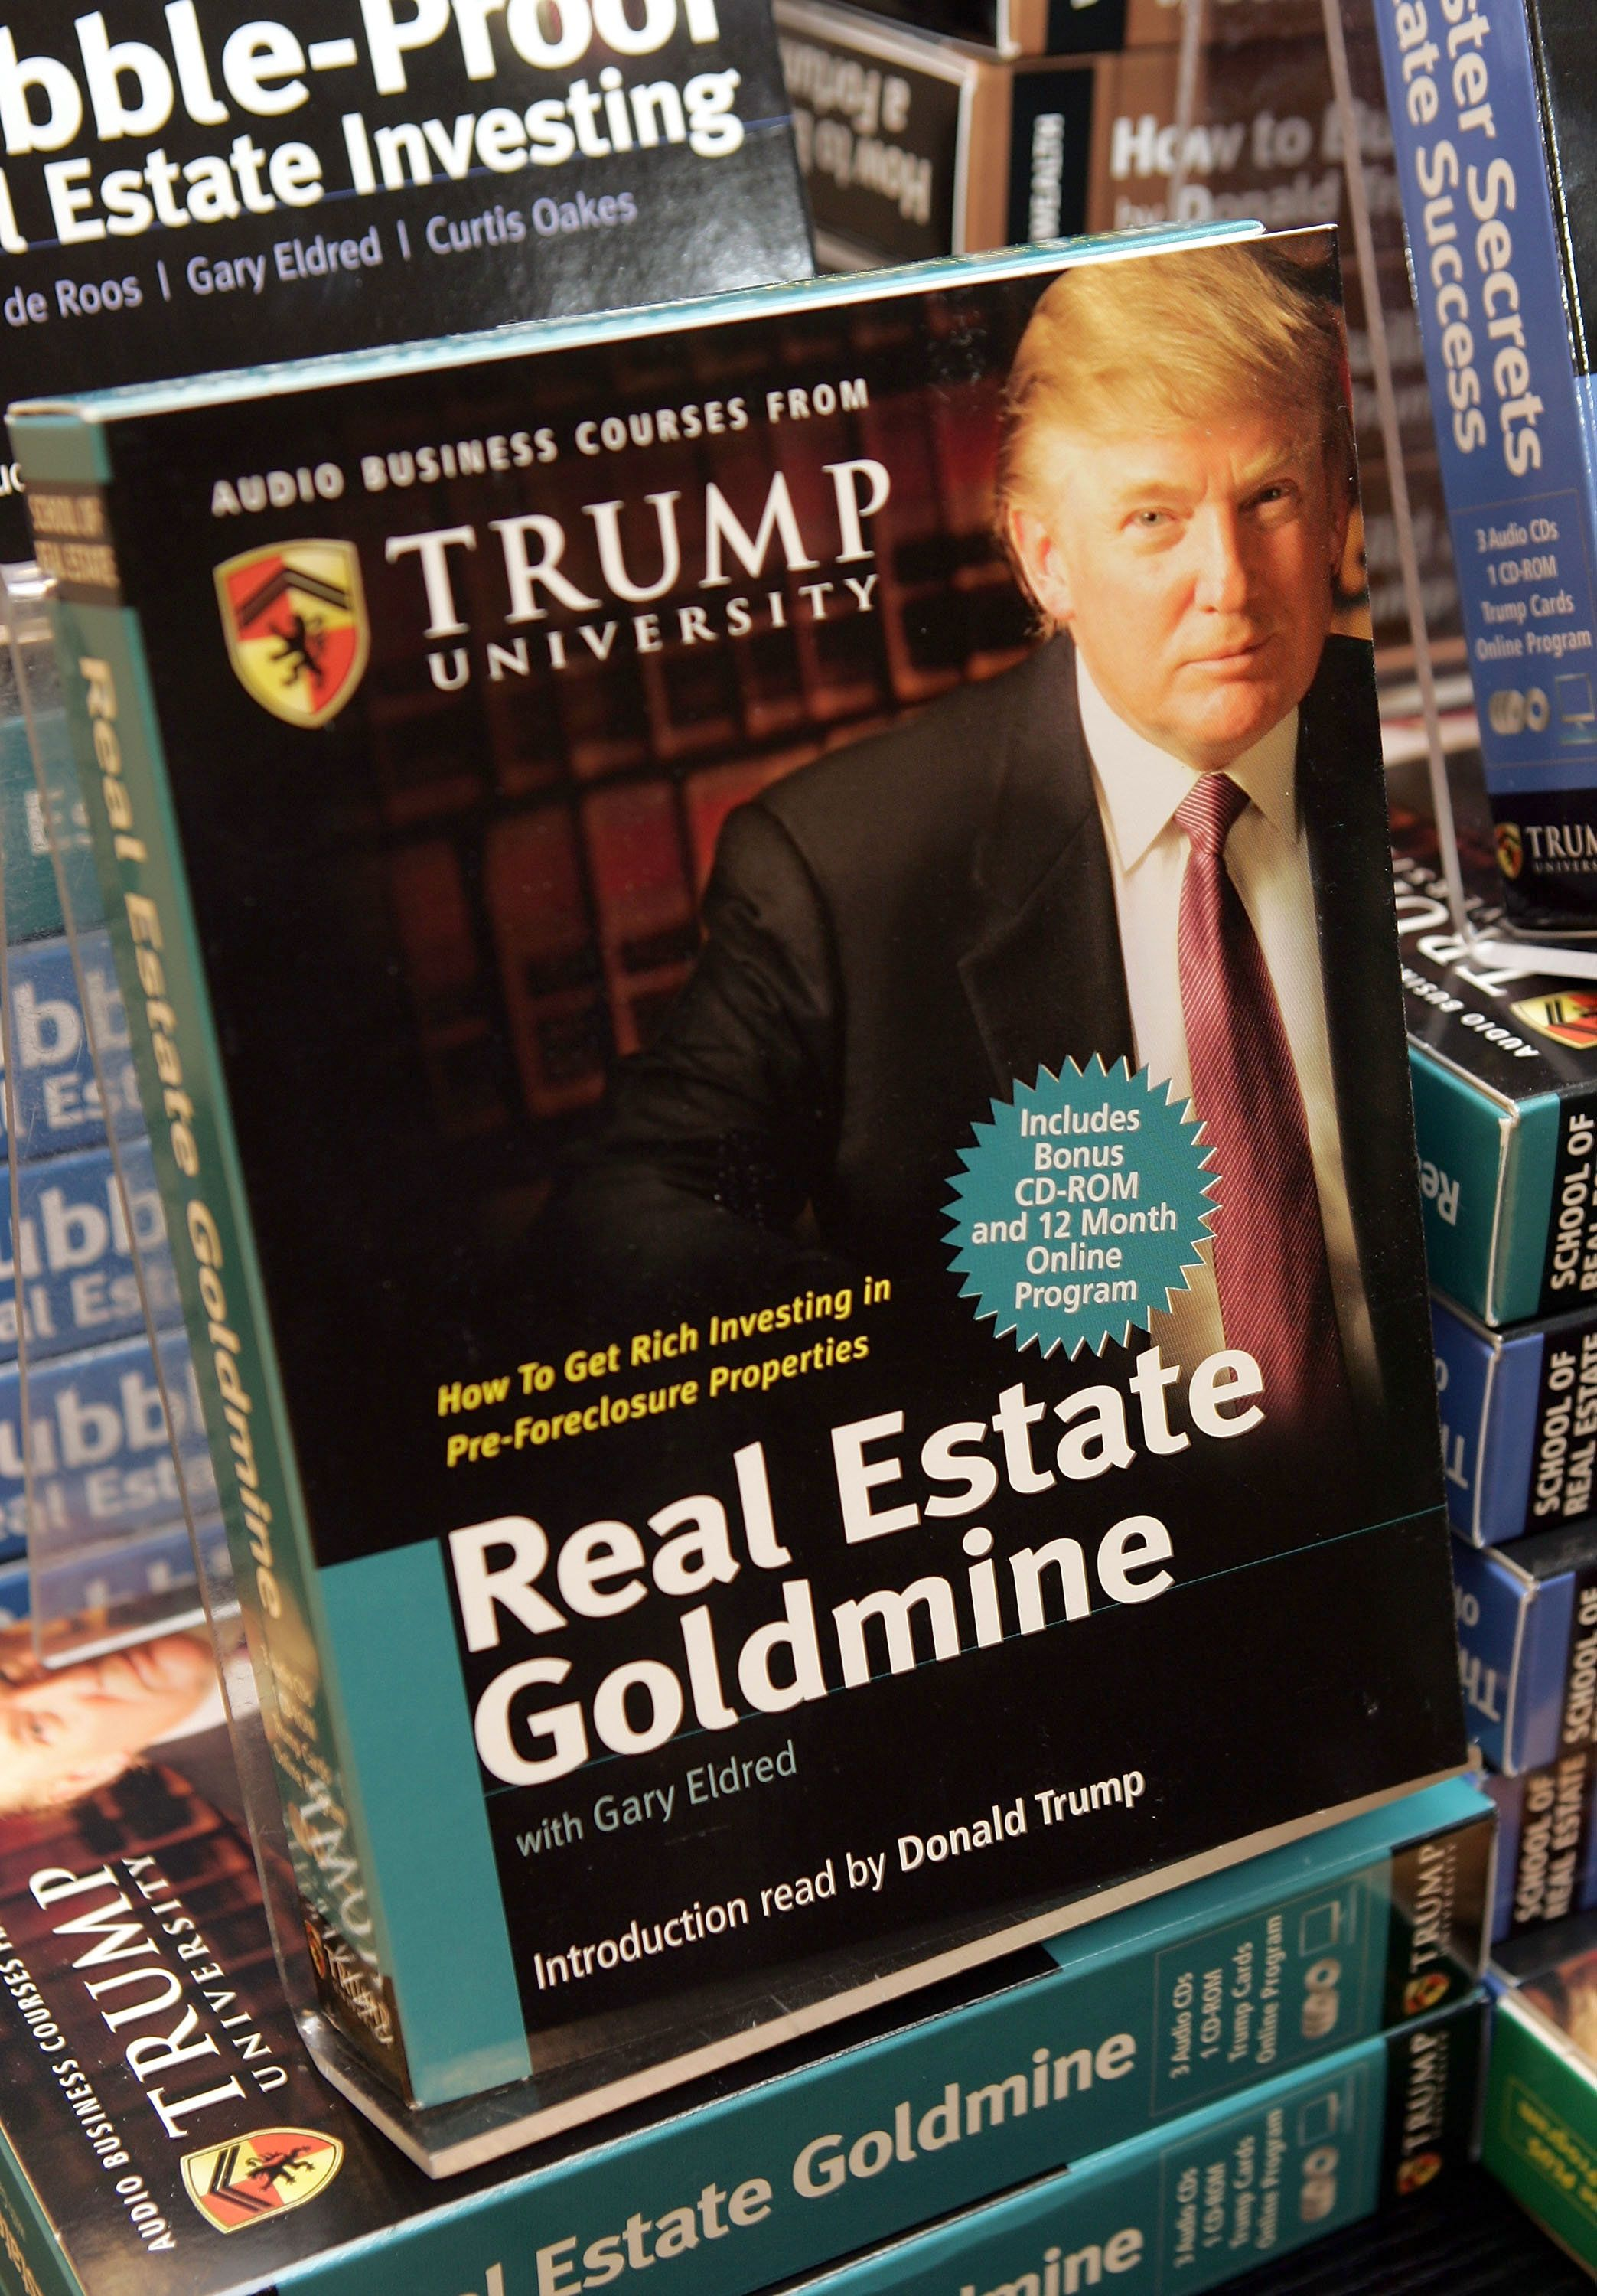 Trump Scammed Inexperienced Investors Through Endorsement Deals, Lawsuit